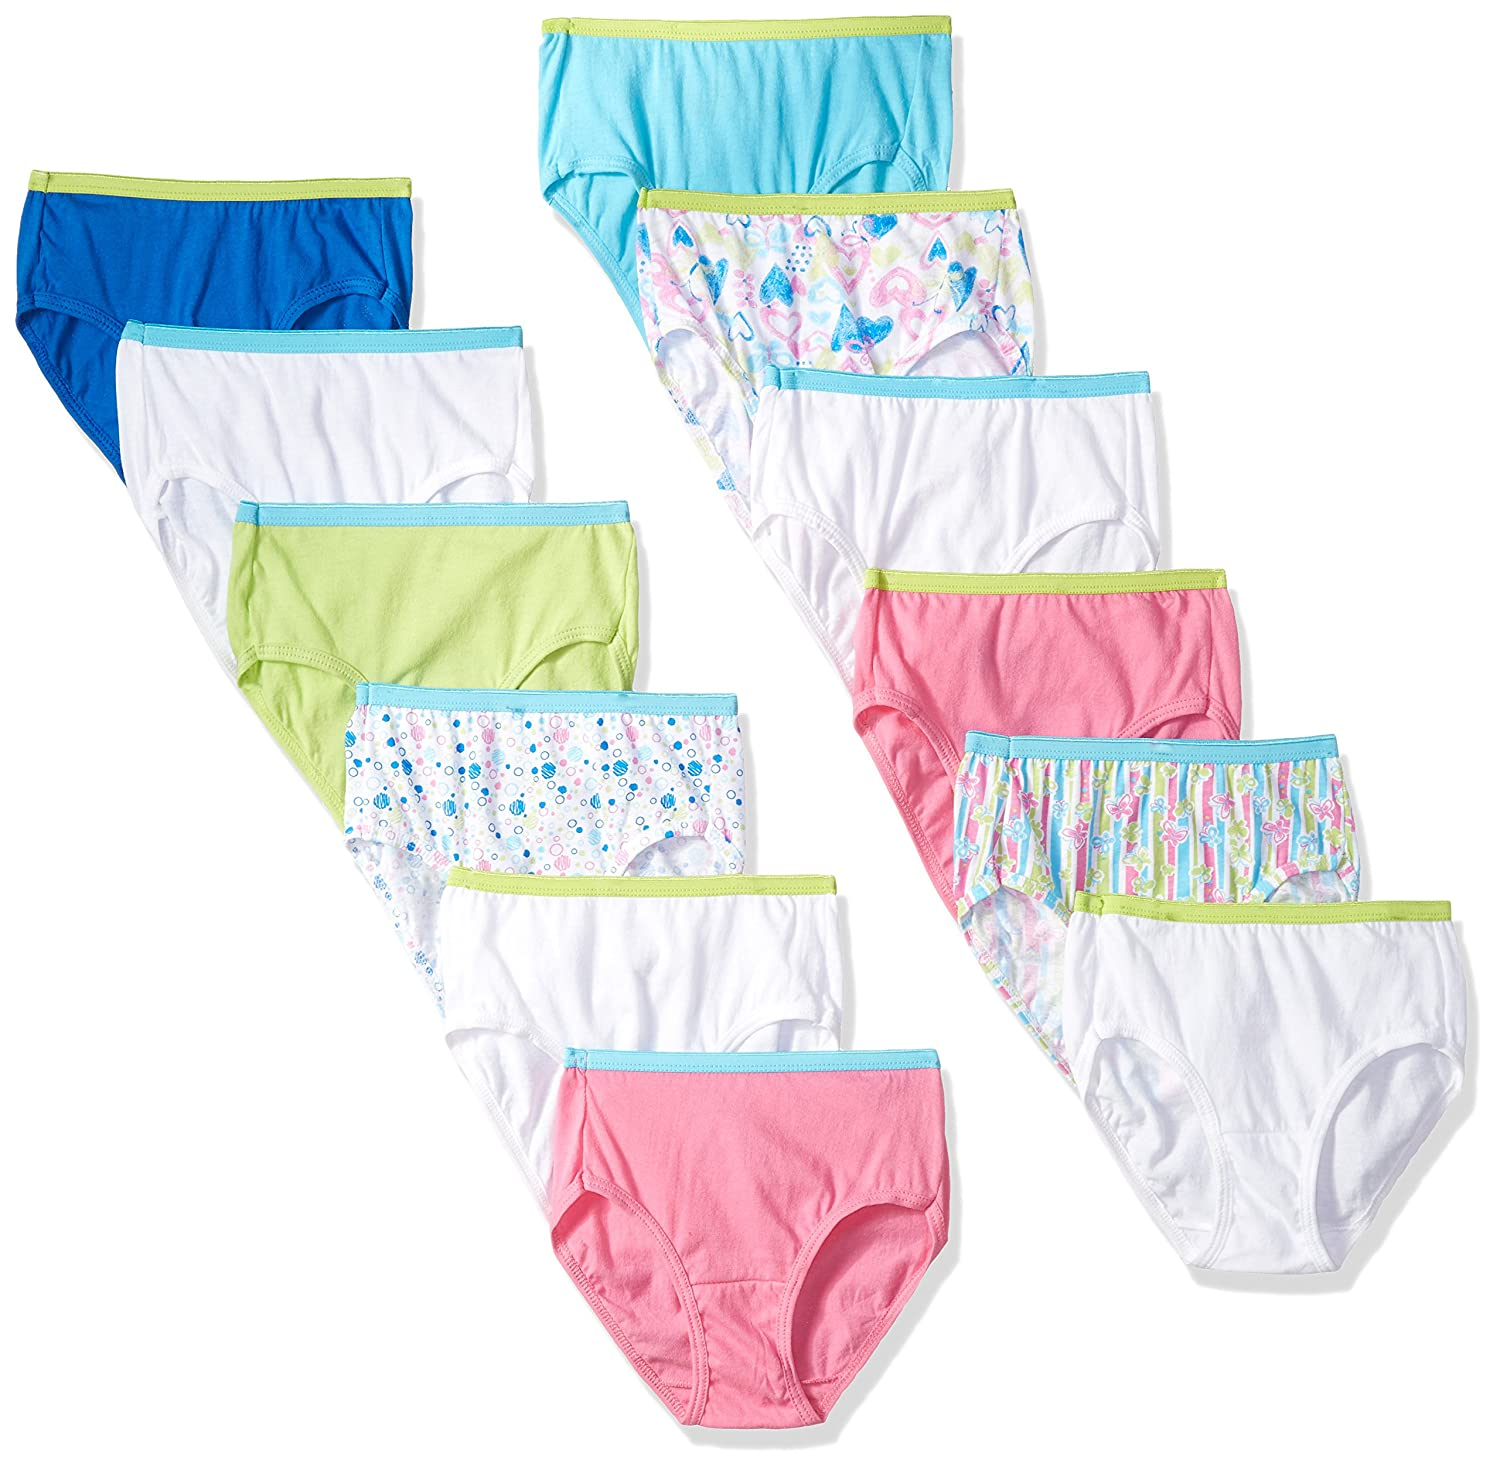 Hanes Girls Big Girls Tagless Cotton Briefs 12-Pack Assorted 10 GP12BR